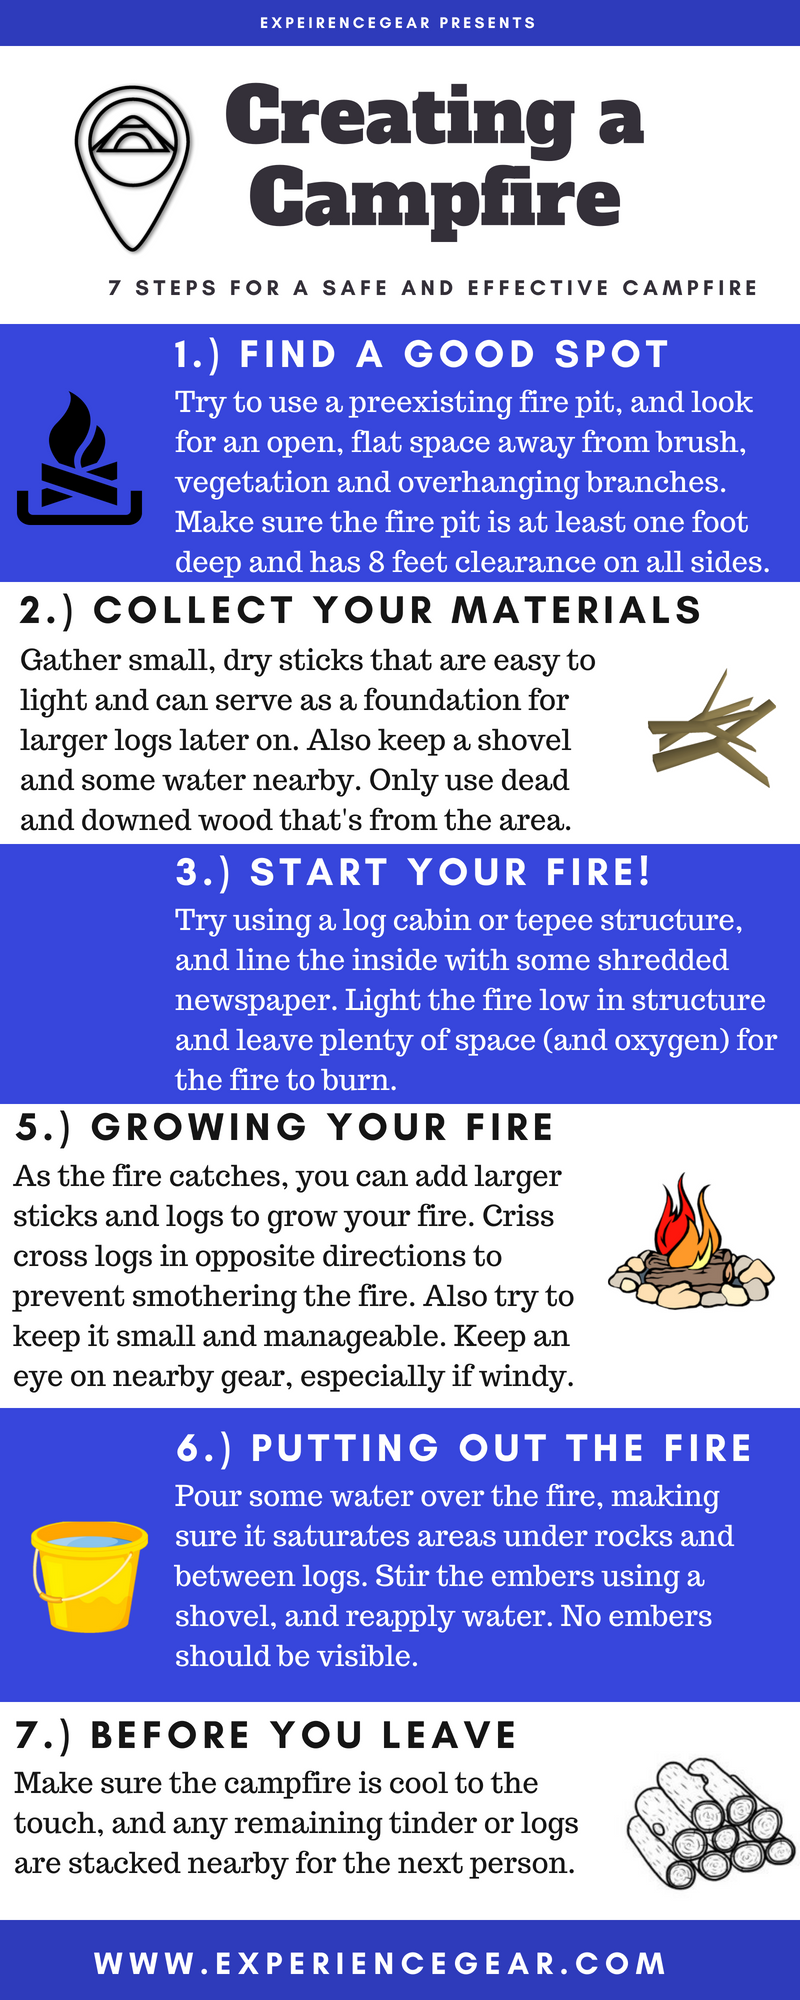 Campfire Guidelines; How to Create a Campfire; Campfire Safety